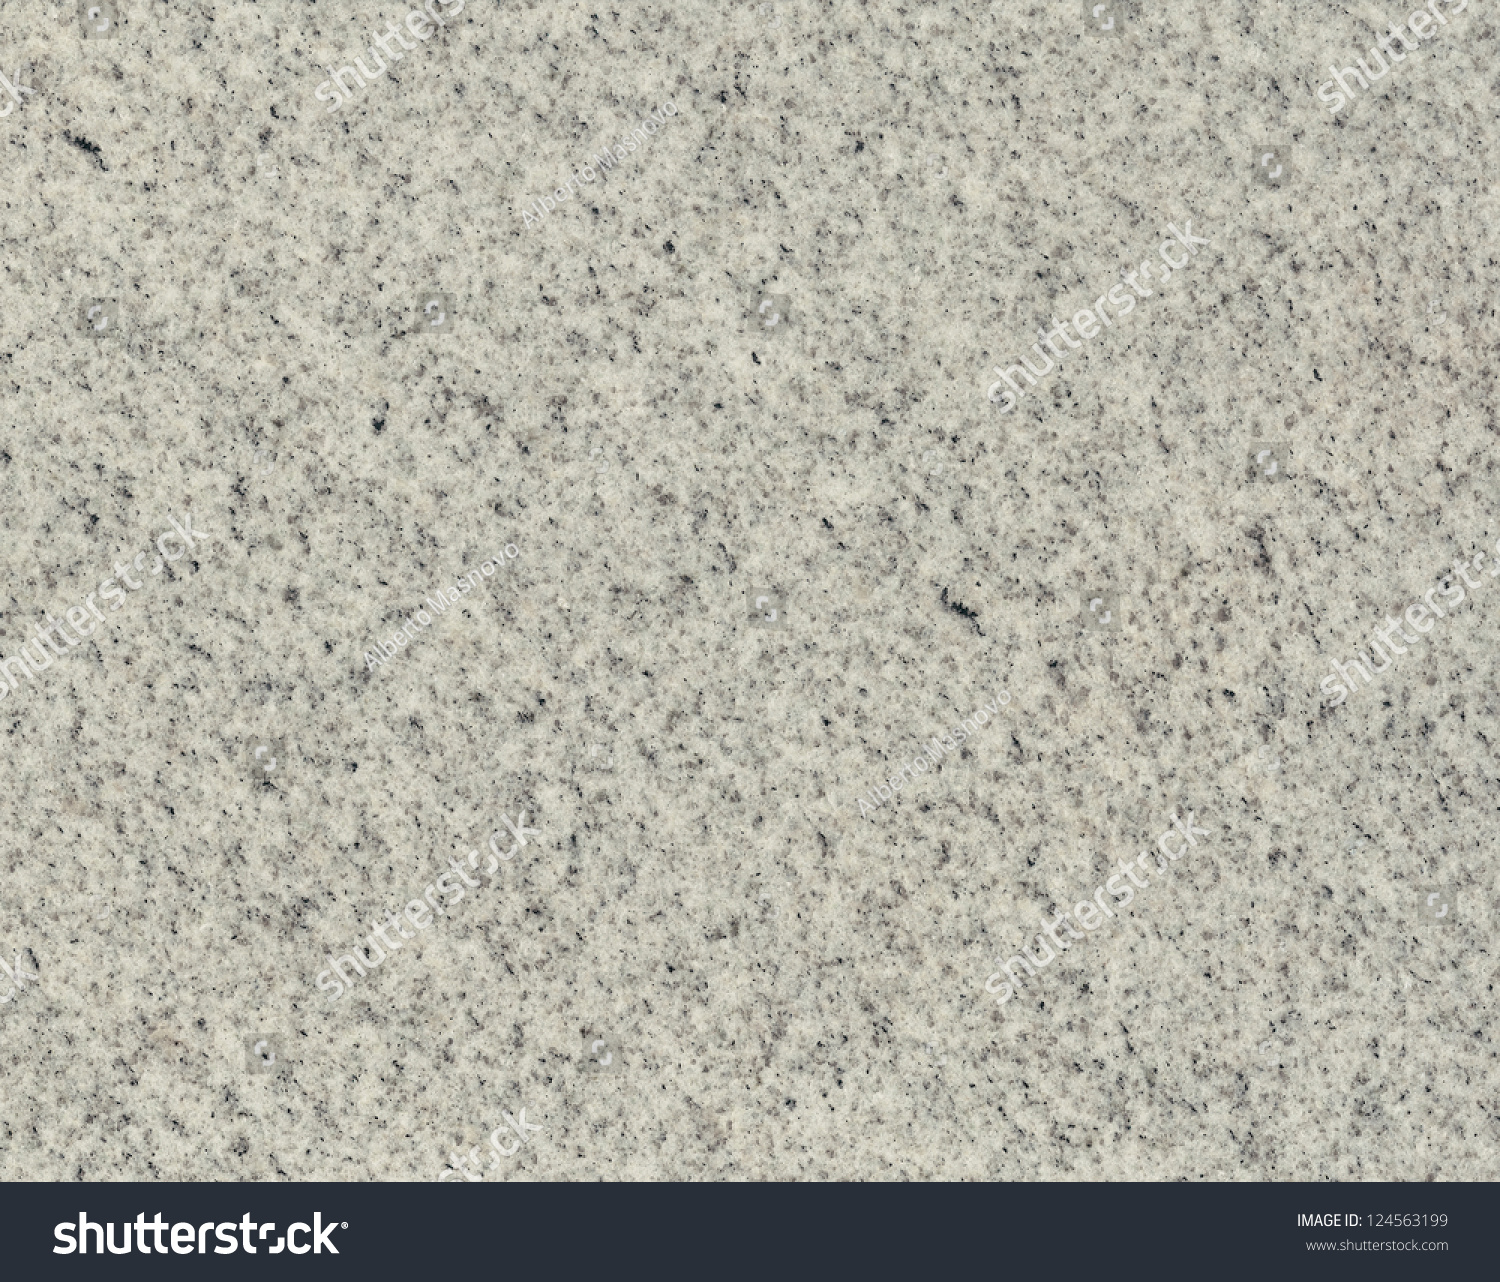 imperial white granite india surface granite stock photo 124563199 shutterstock. Black Bedroom Furniture Sets. Home Design Ideas